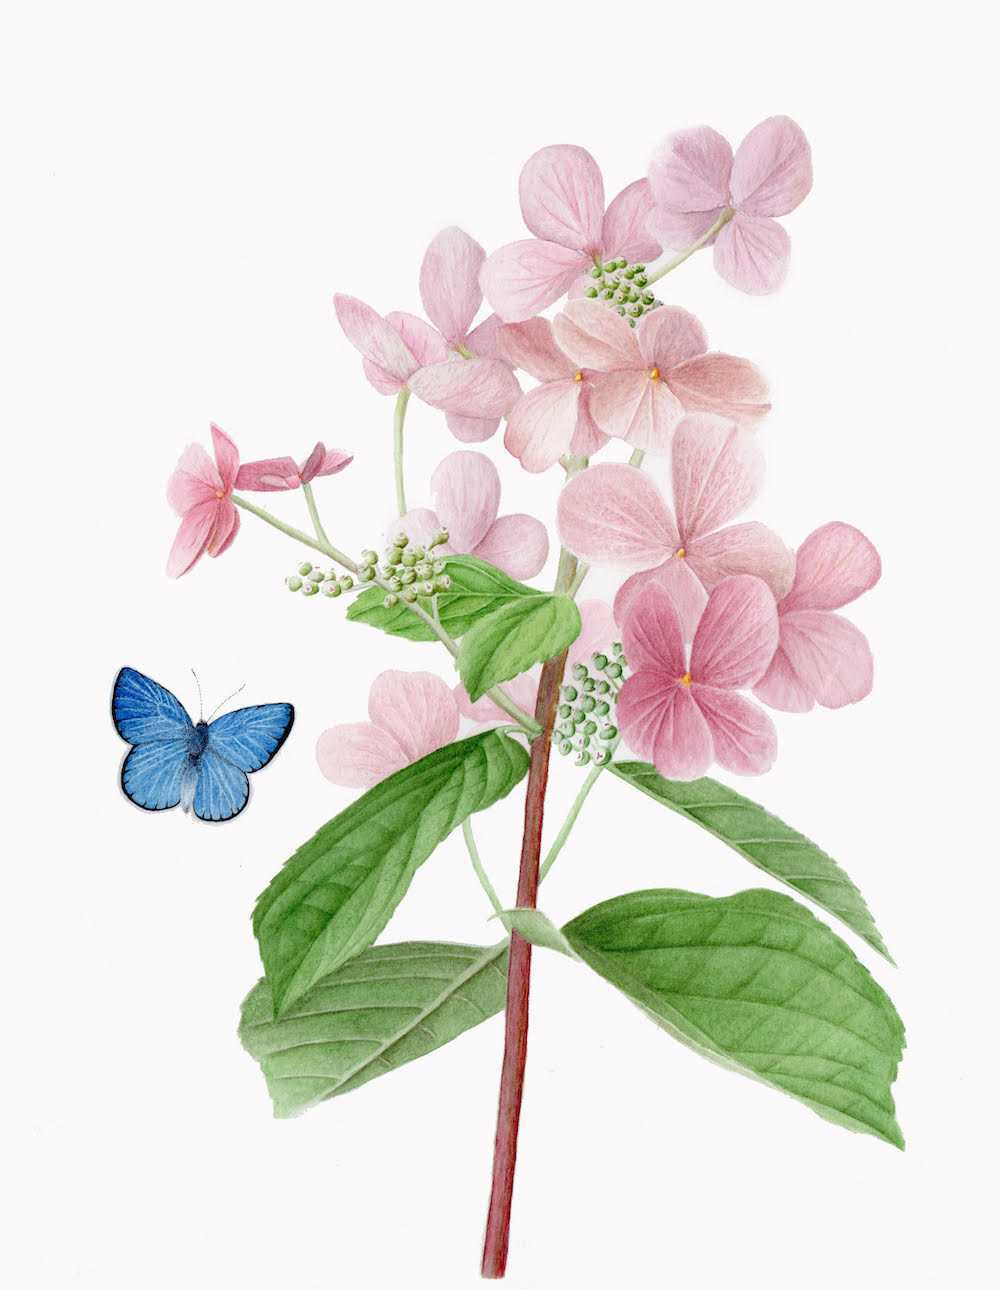 Hydrangea illustration by Nora Sherwood